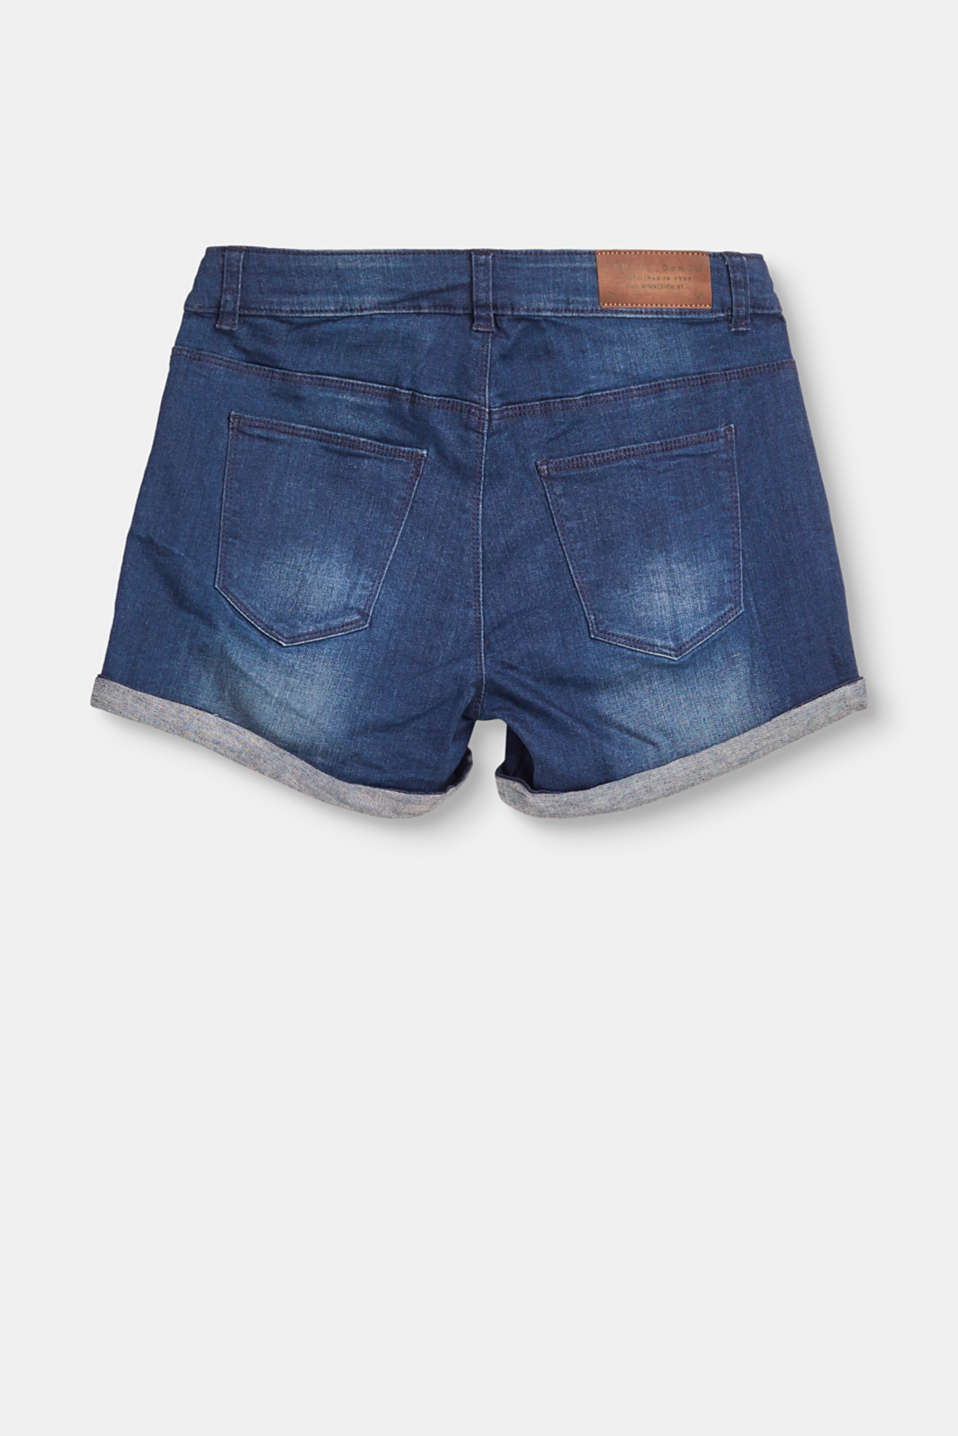 Ultra stretchy denim shorts with a vintage garment wash